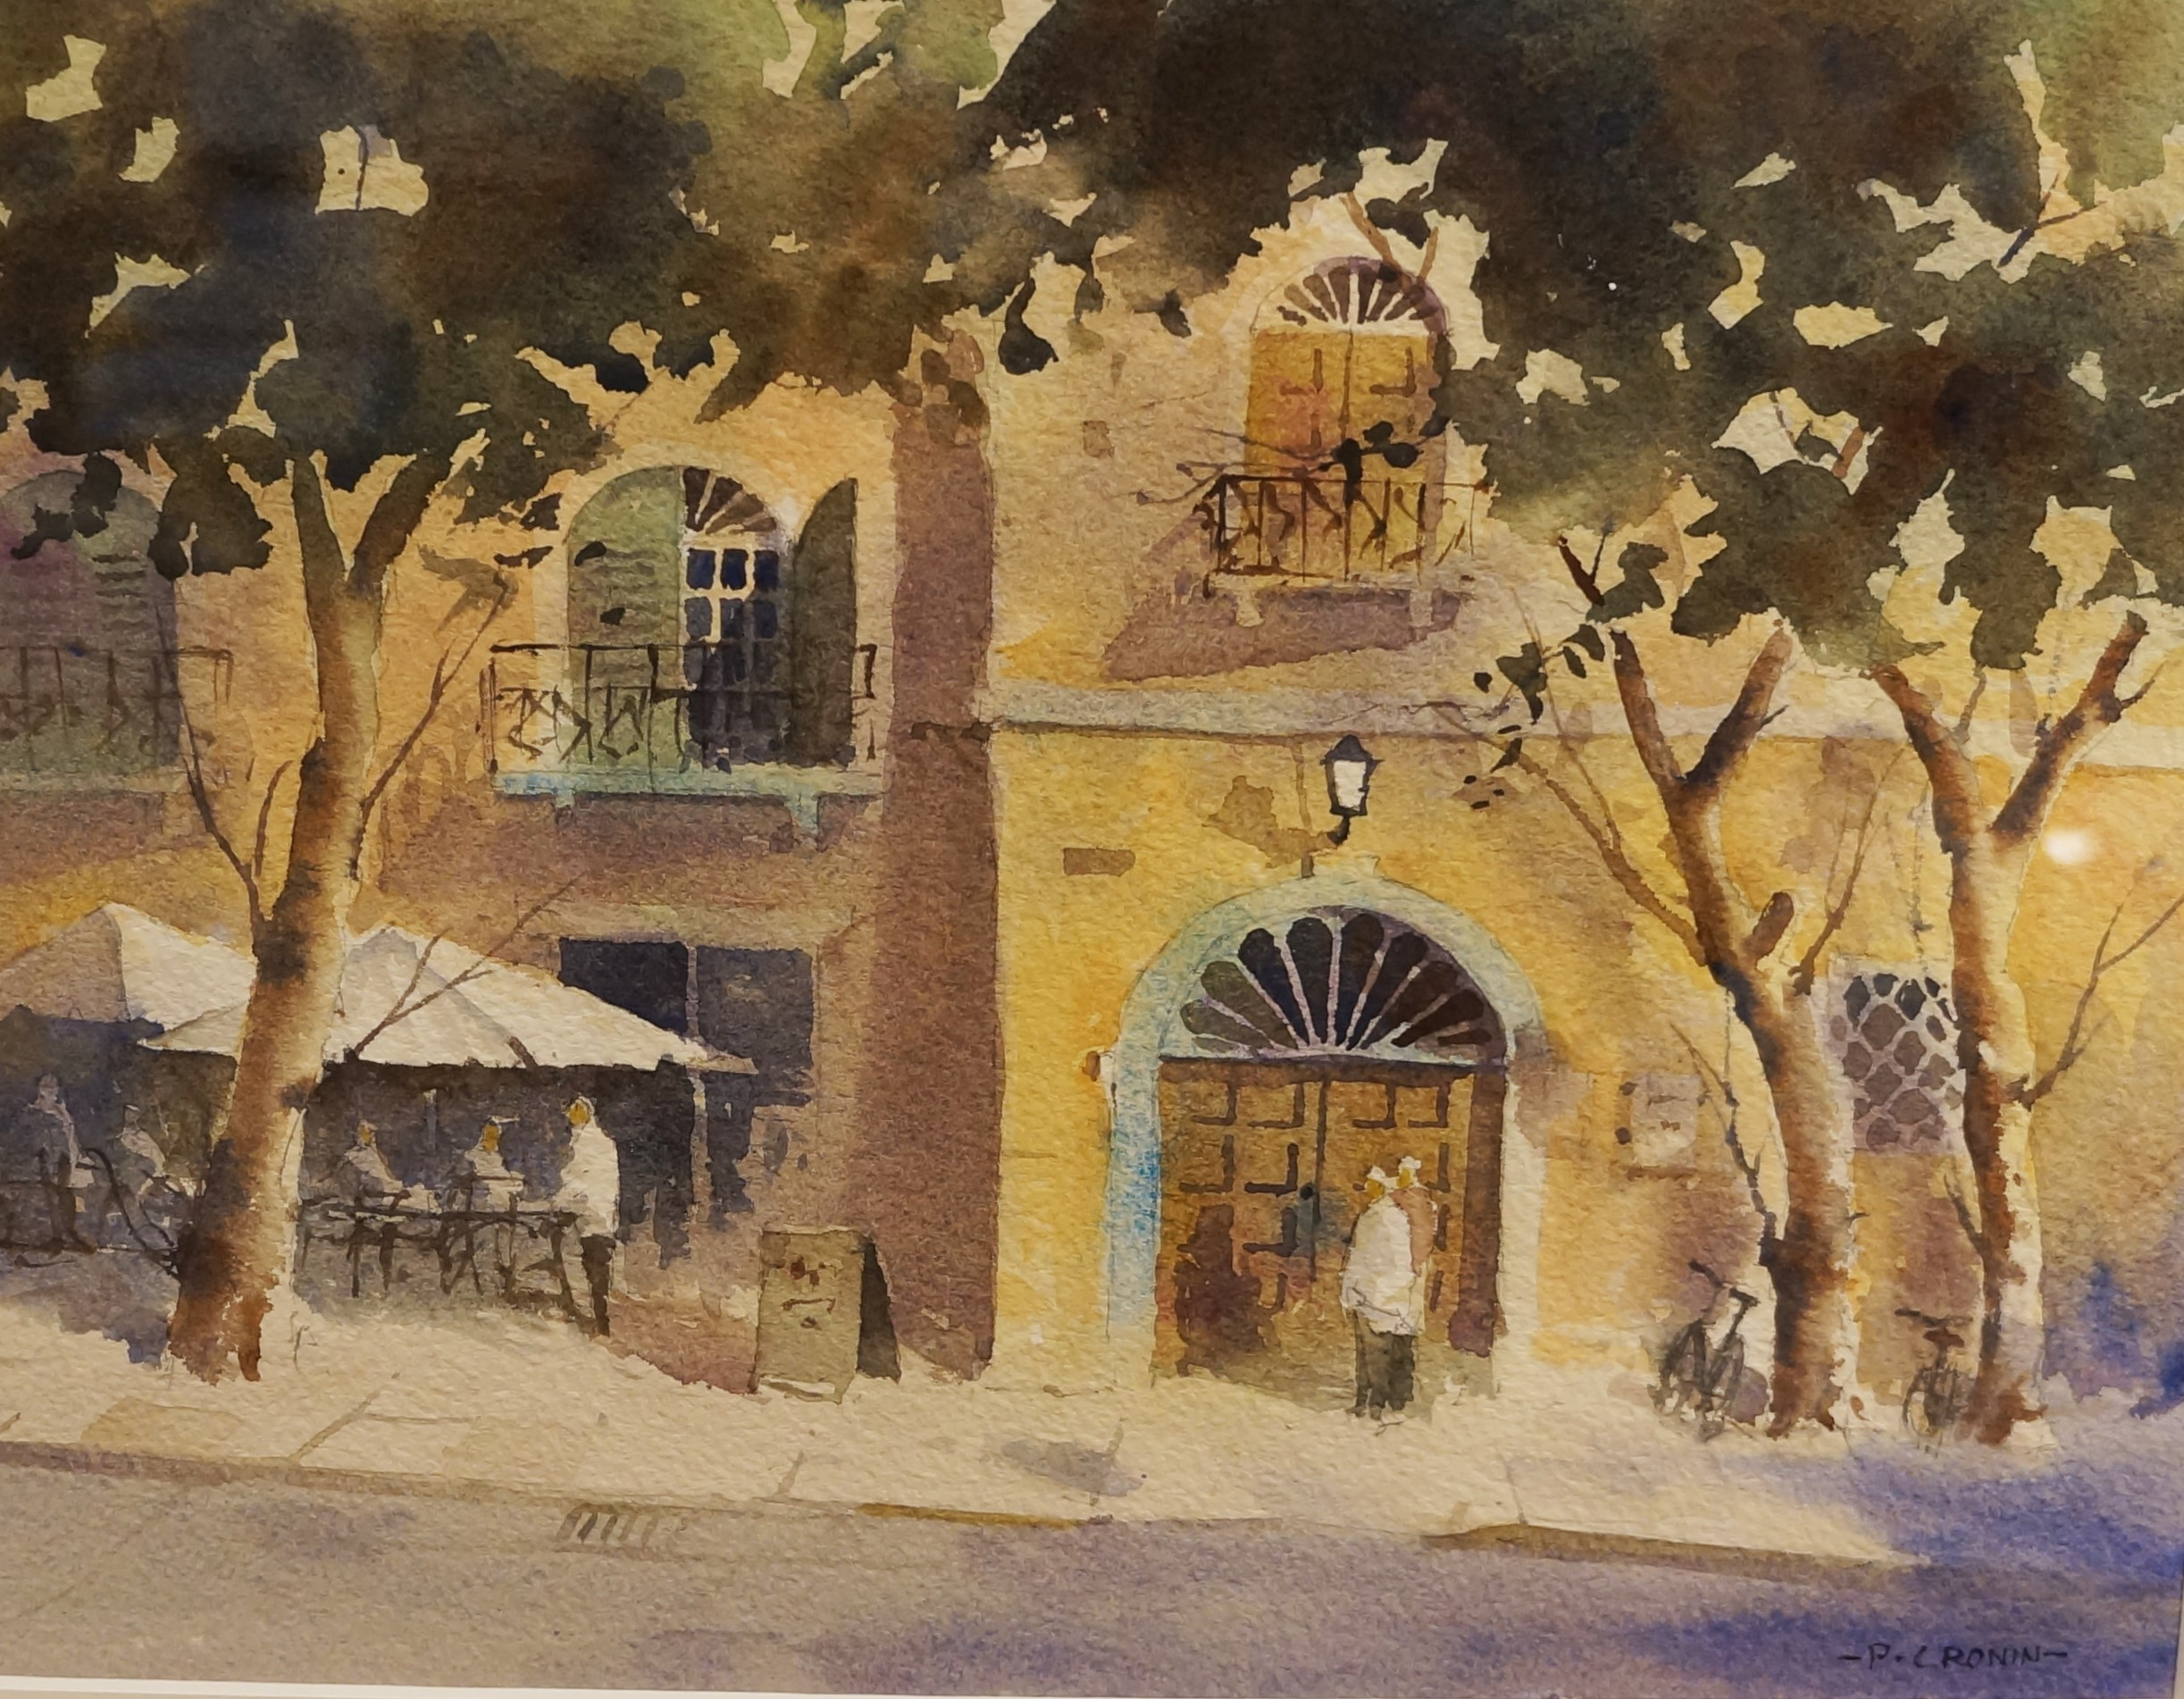 Peters The Spiritualist Tradition Peter Cronin Cafe Lucca Tuscany